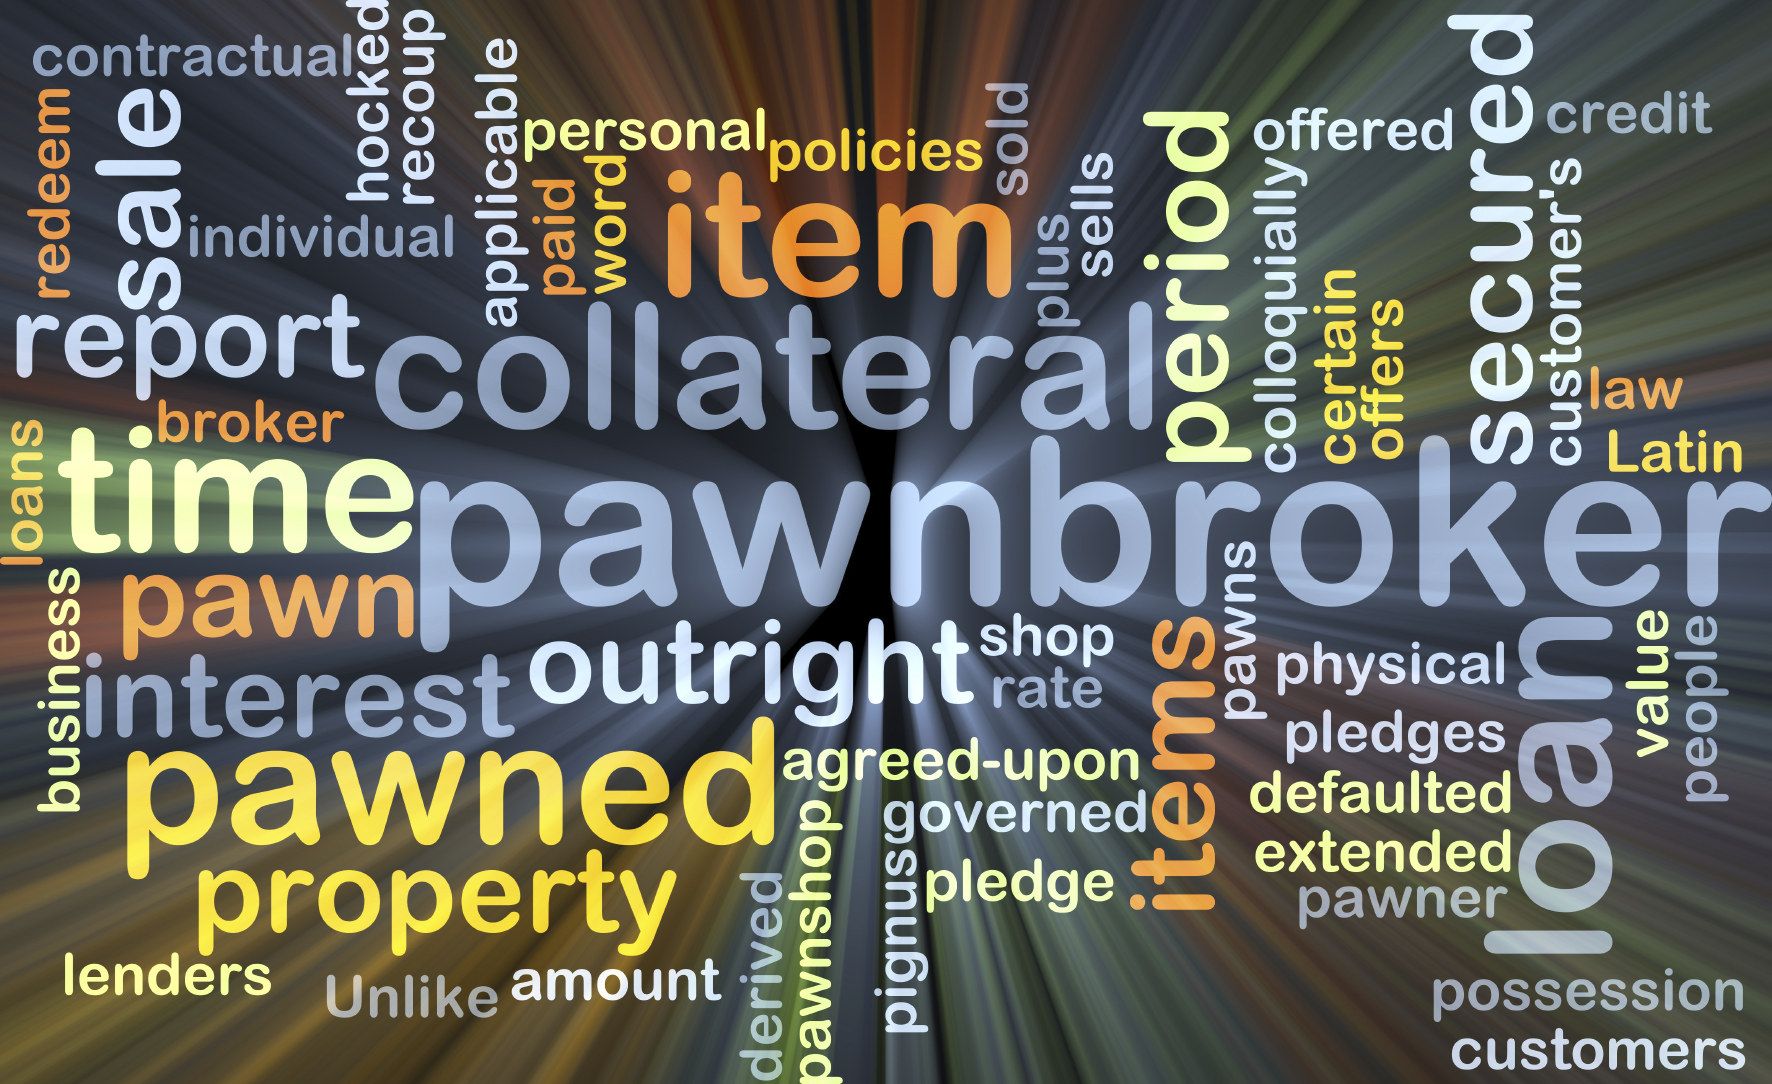 Florida law allows Pawn brokers to be paid for stolen items